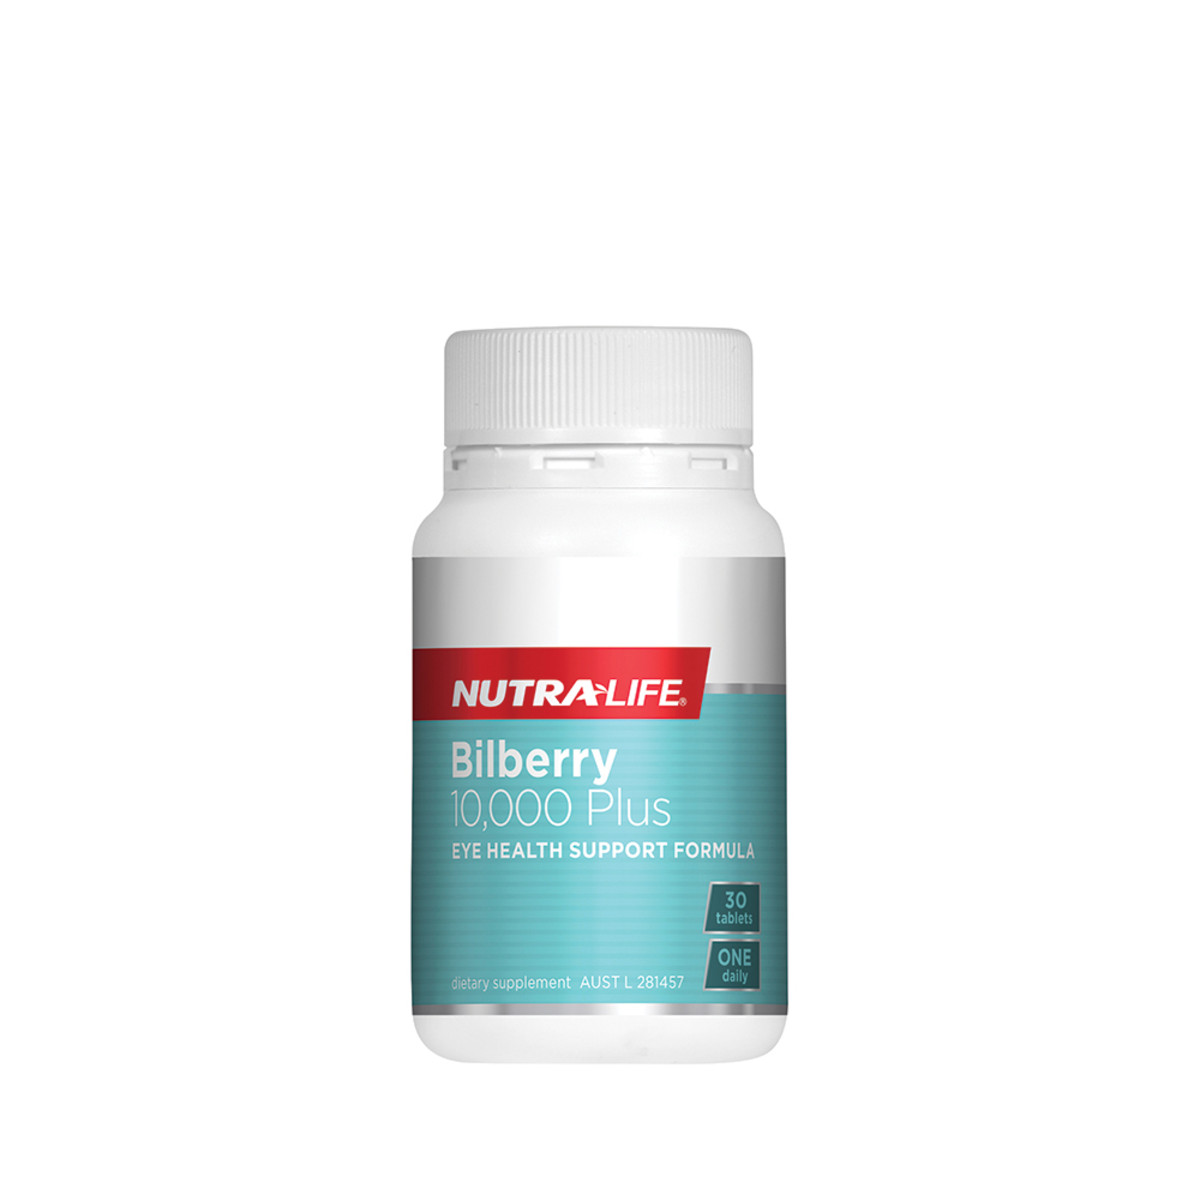 Image of Nutra Life Bilberry 10000 Plus Lutein Complex 30 or 60tabs